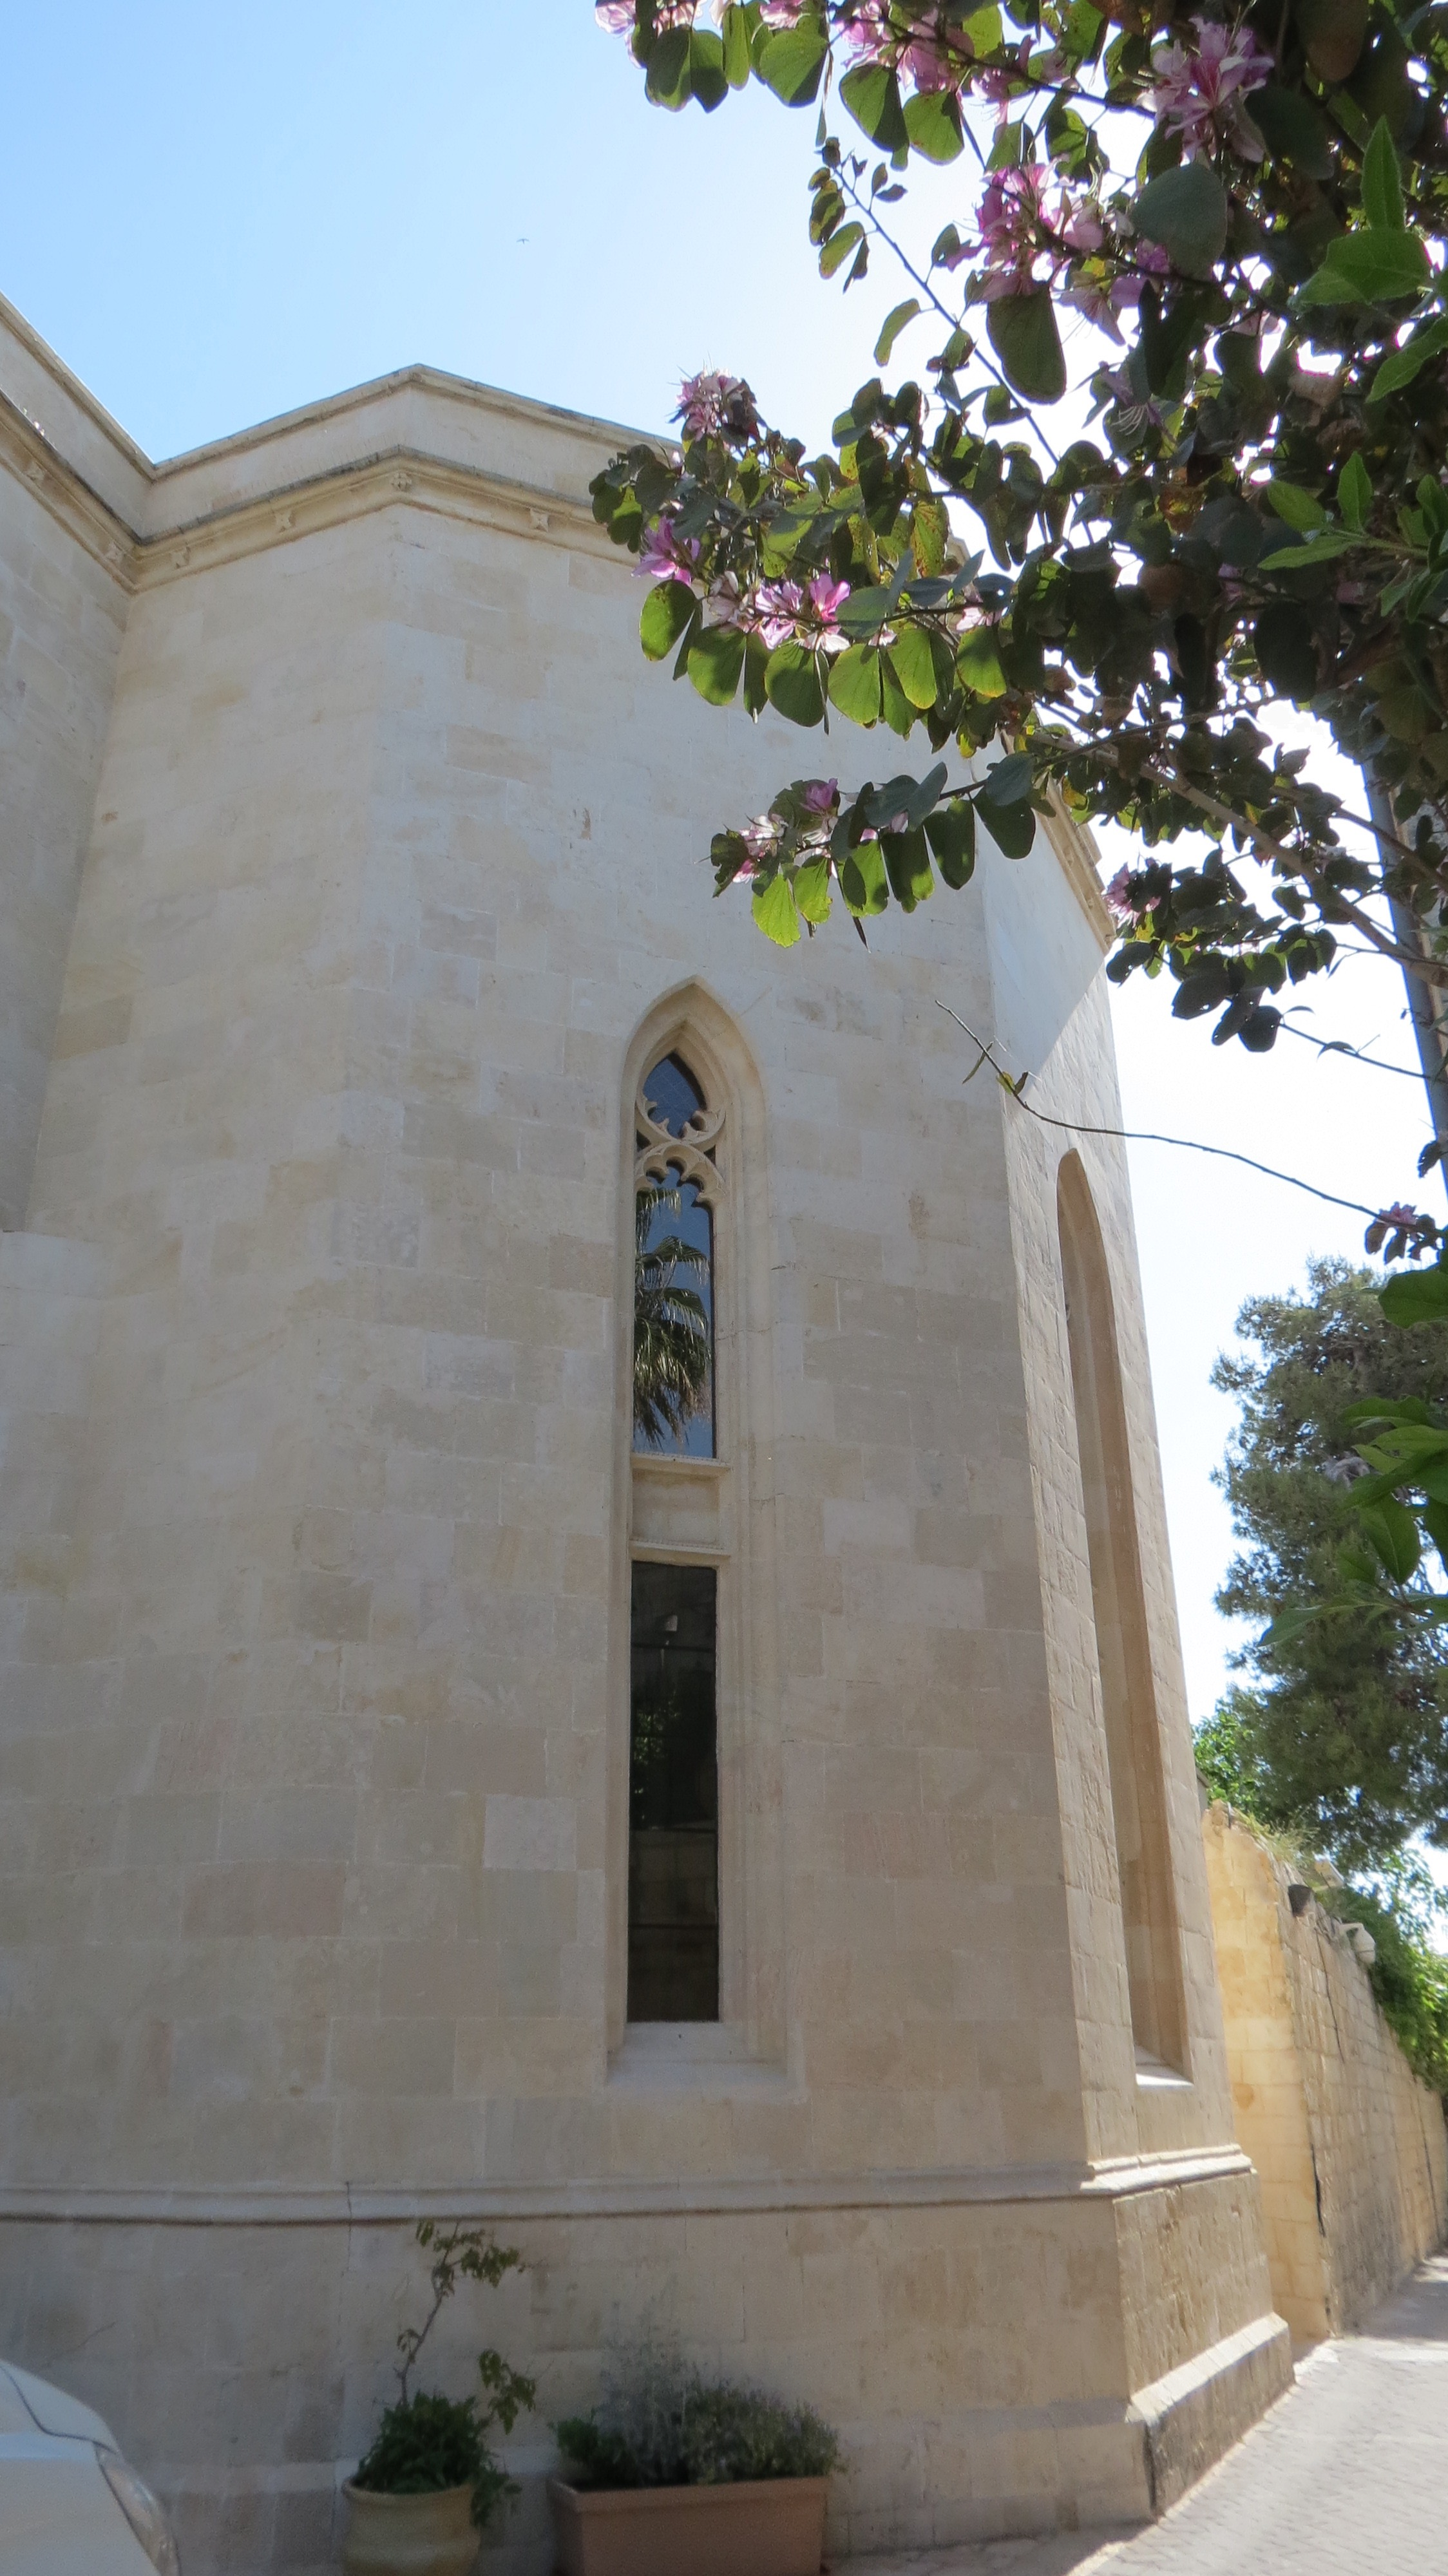 Christ Church - The Church of the Messiah, Jerusalem